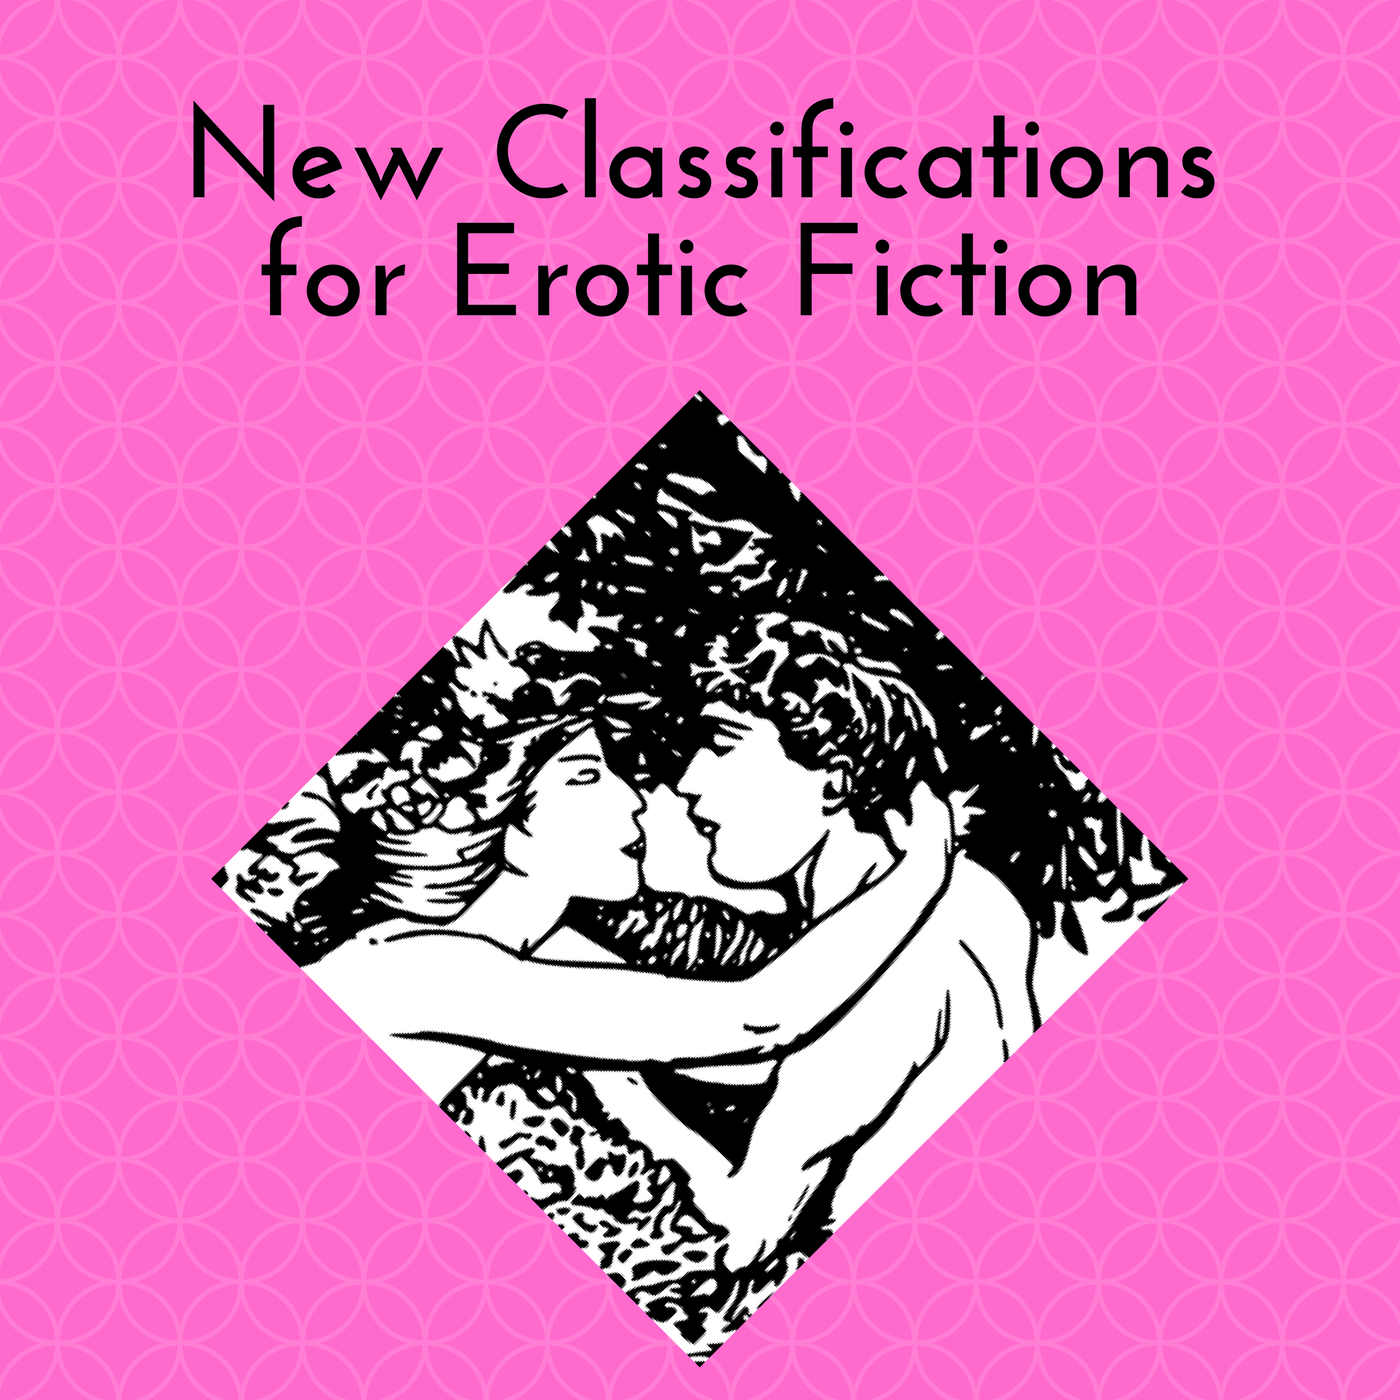 Smashwords Implements New Classifications For Erotic Fiction